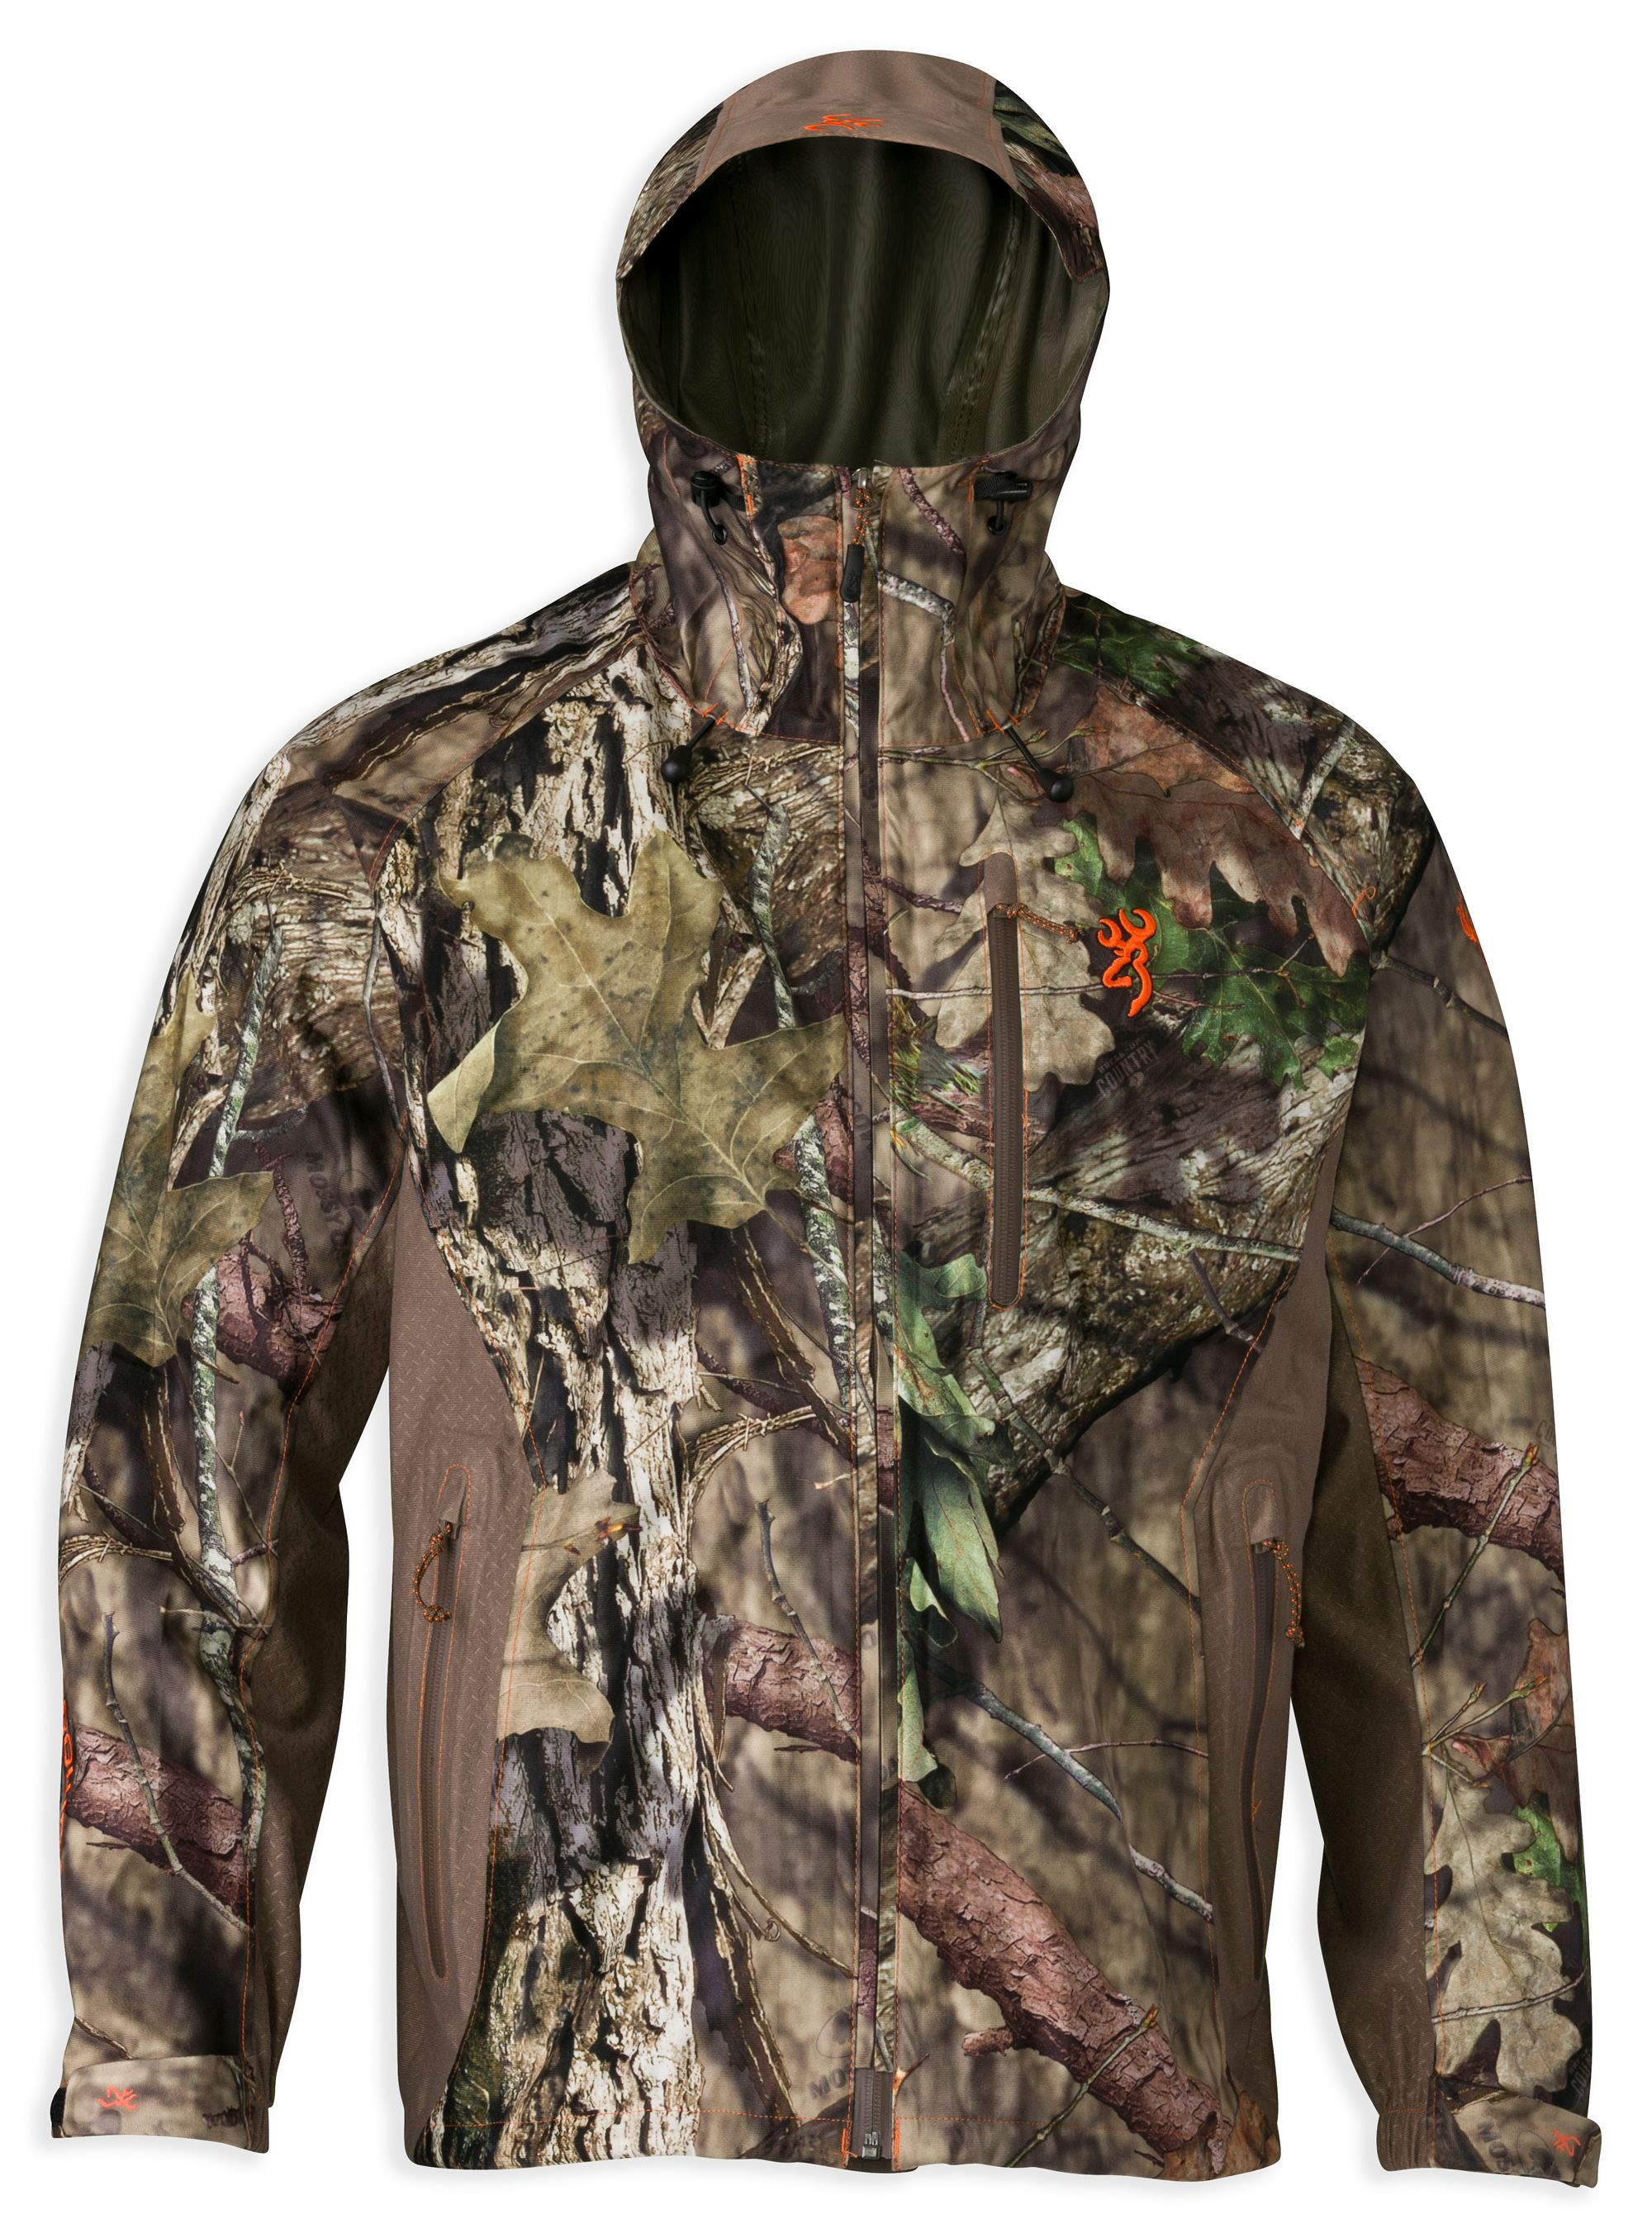 Browning Hell's Canyon Mossy Oak Break Up Country Packable Rain Jacket $265  MSRP Quiet ultralight Pre